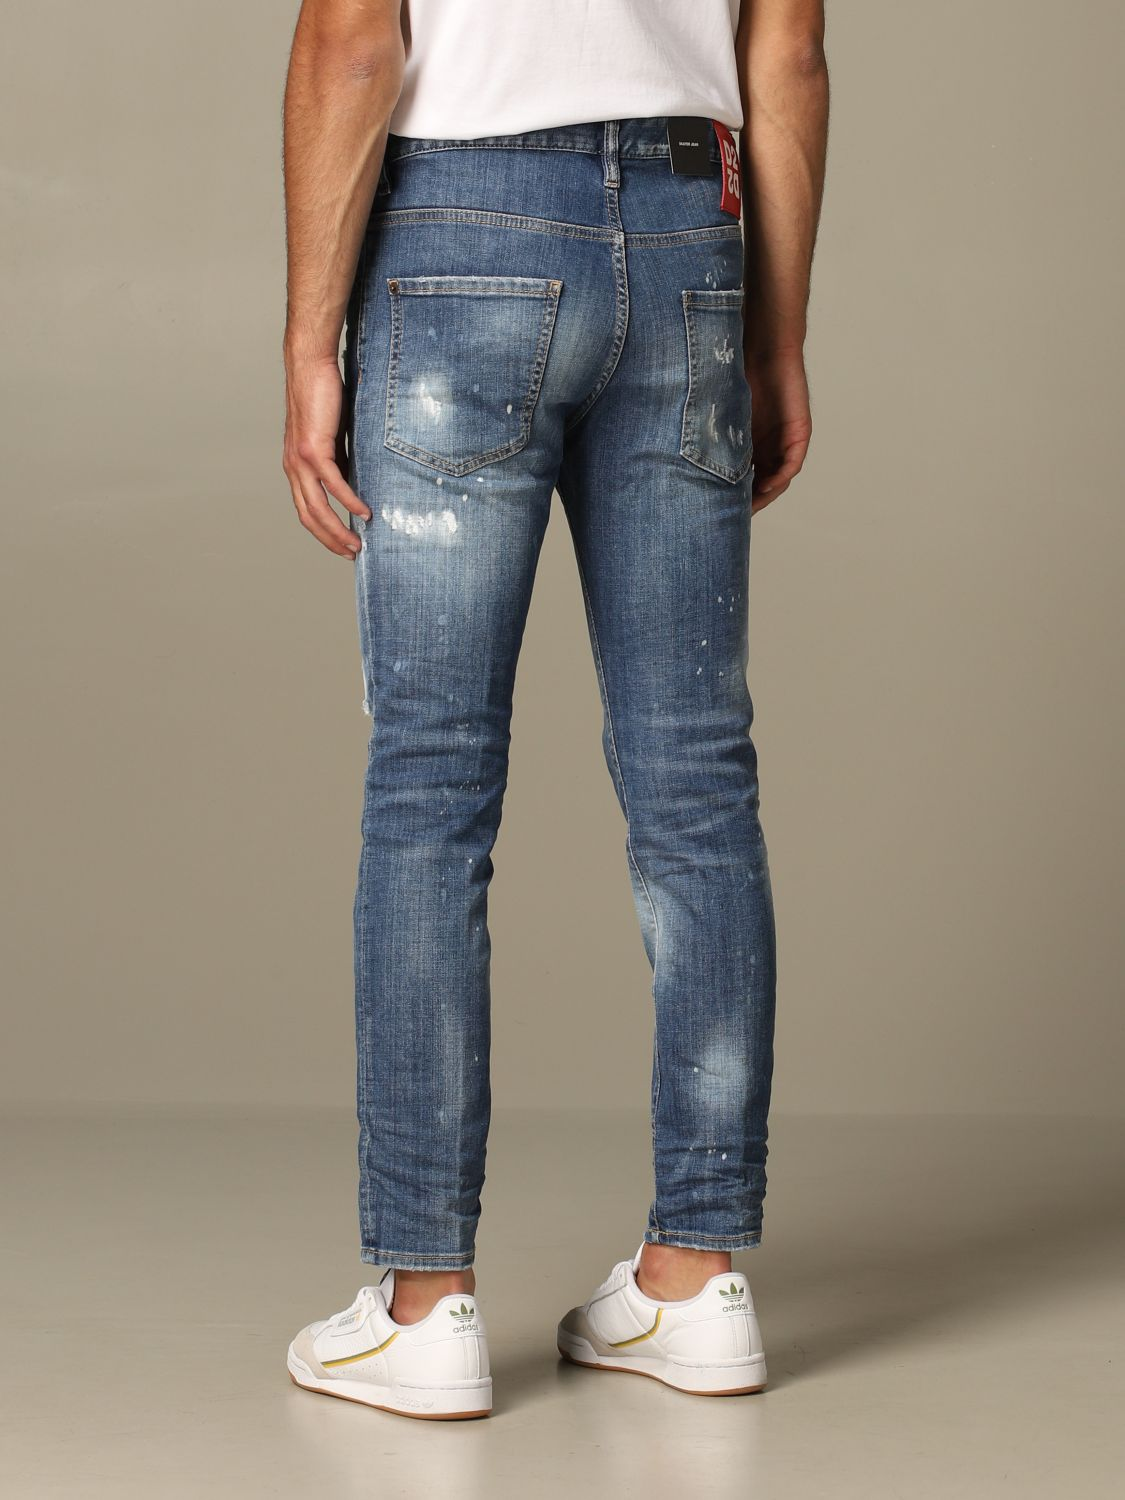 Jeans homme Dsquared2 denim 2